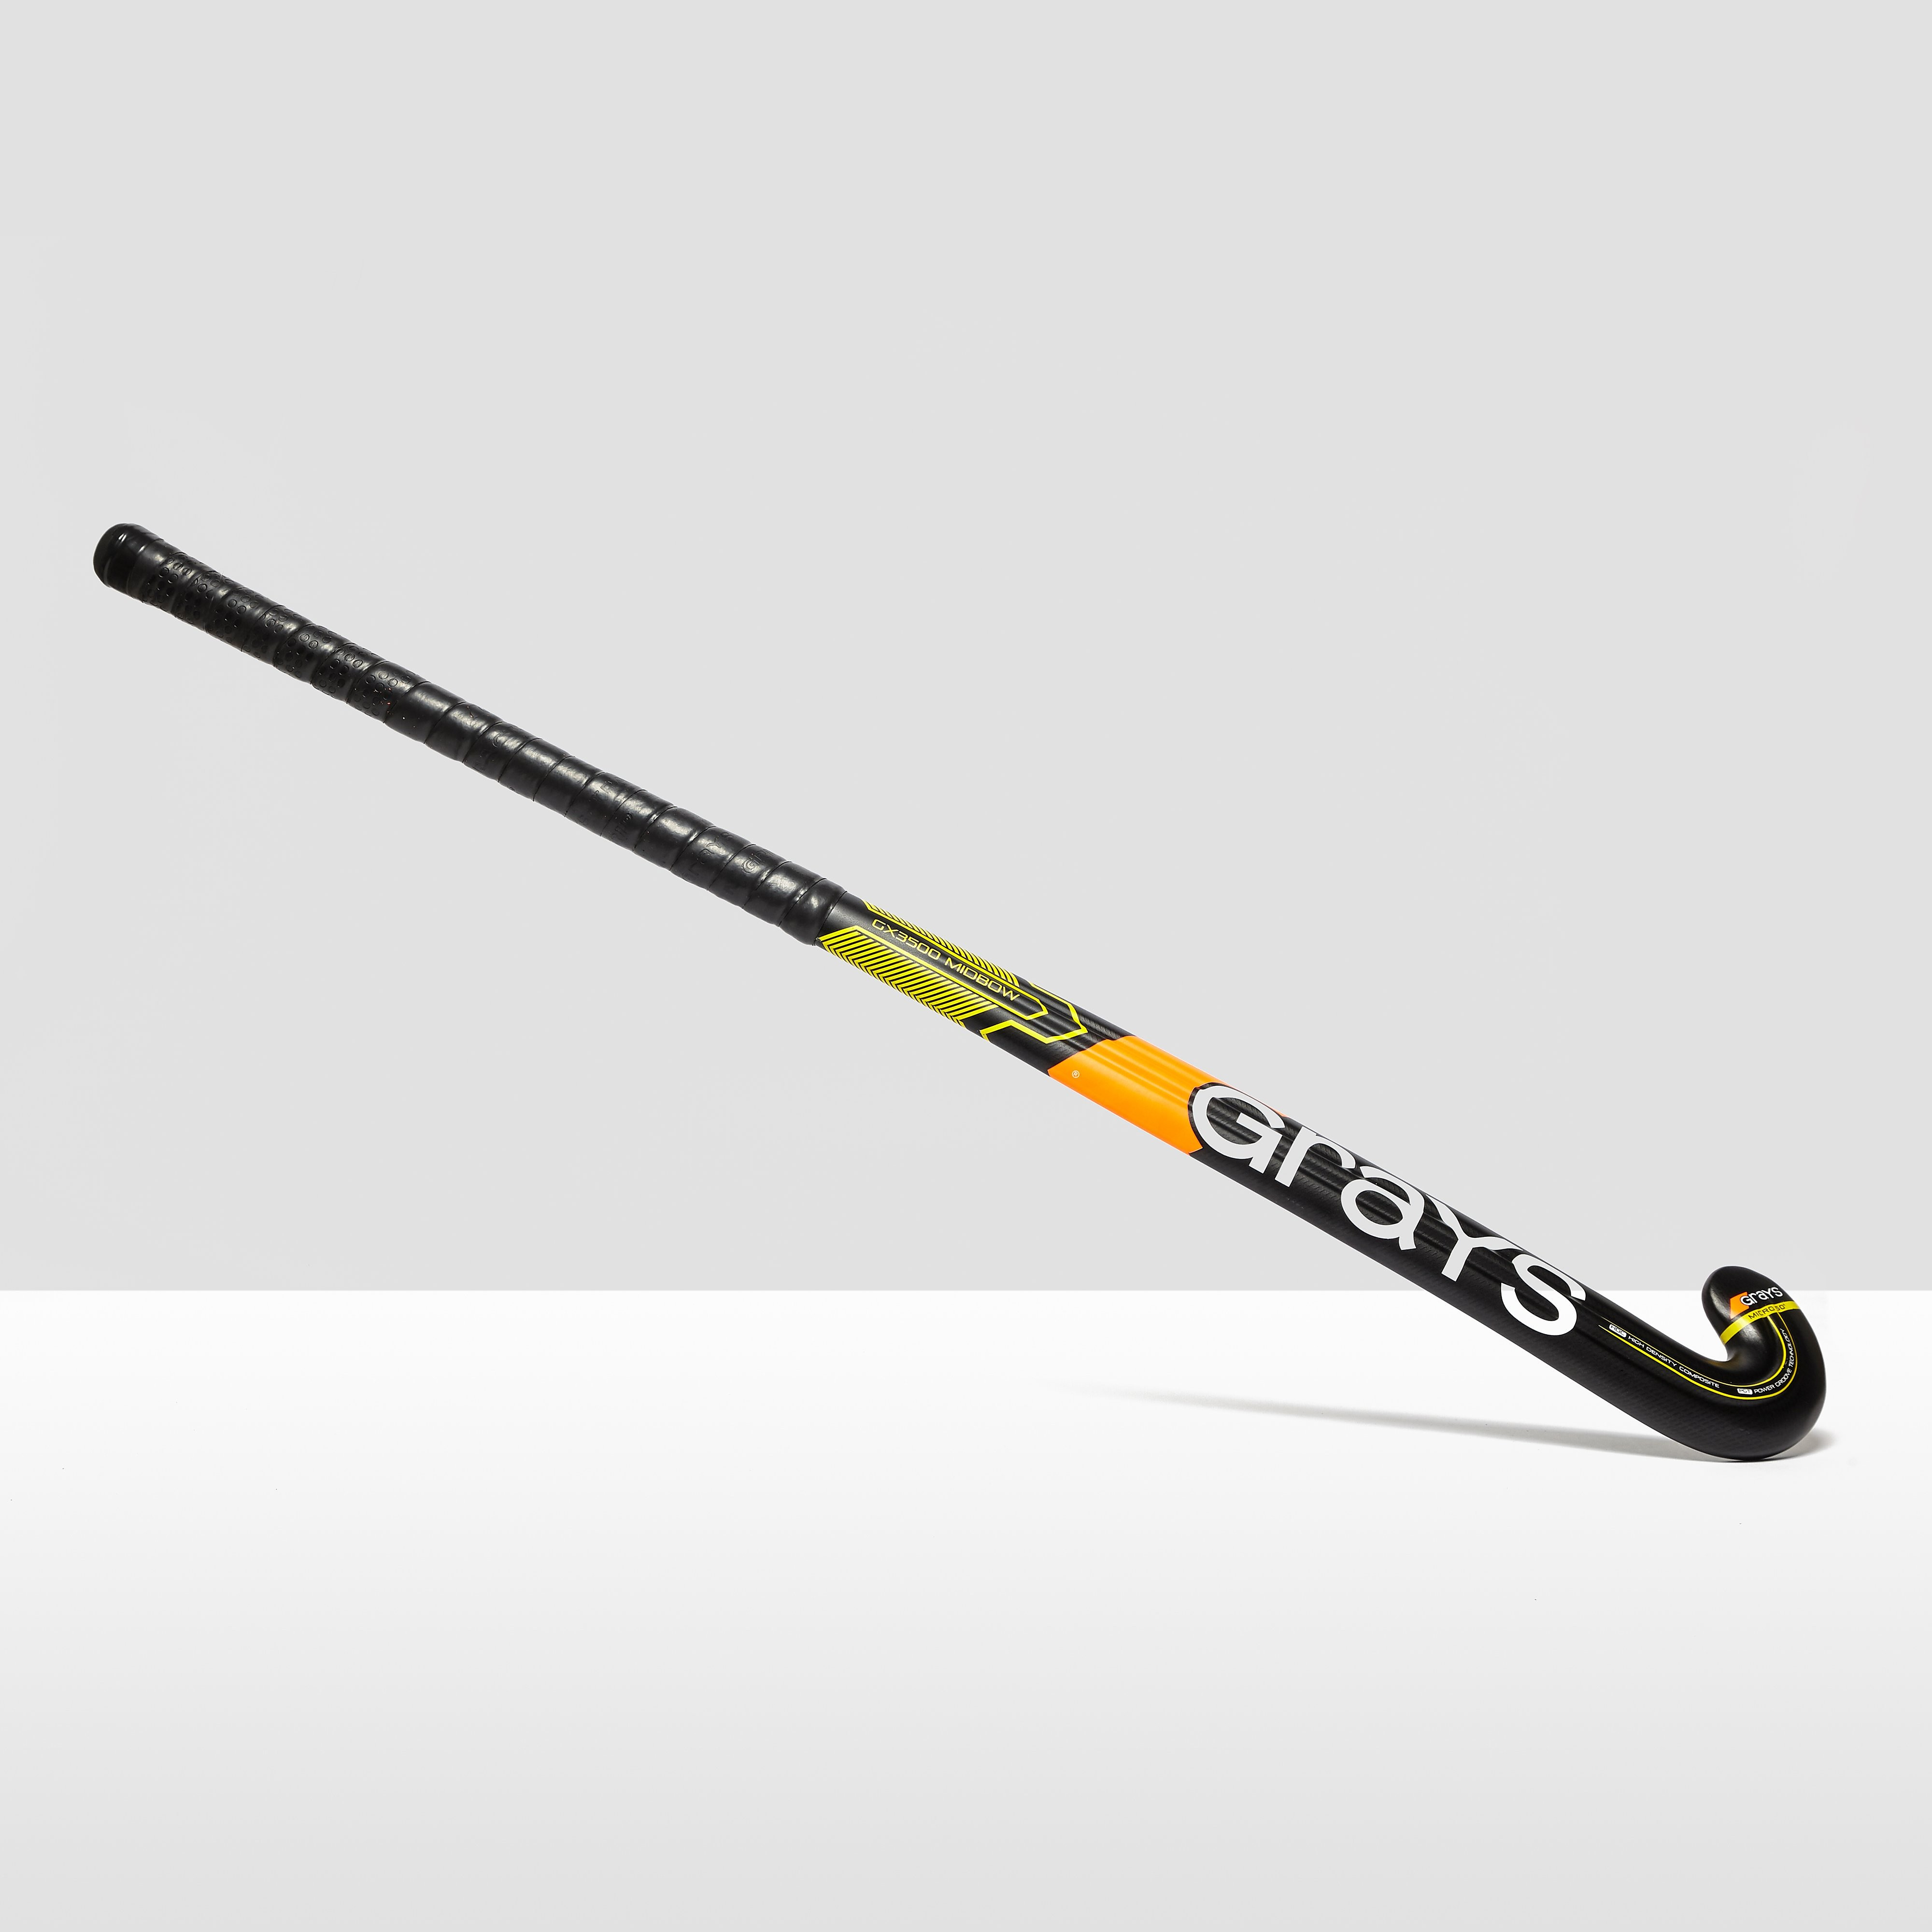 Grays GX 3500 Dynabow Composite Hockey Stick